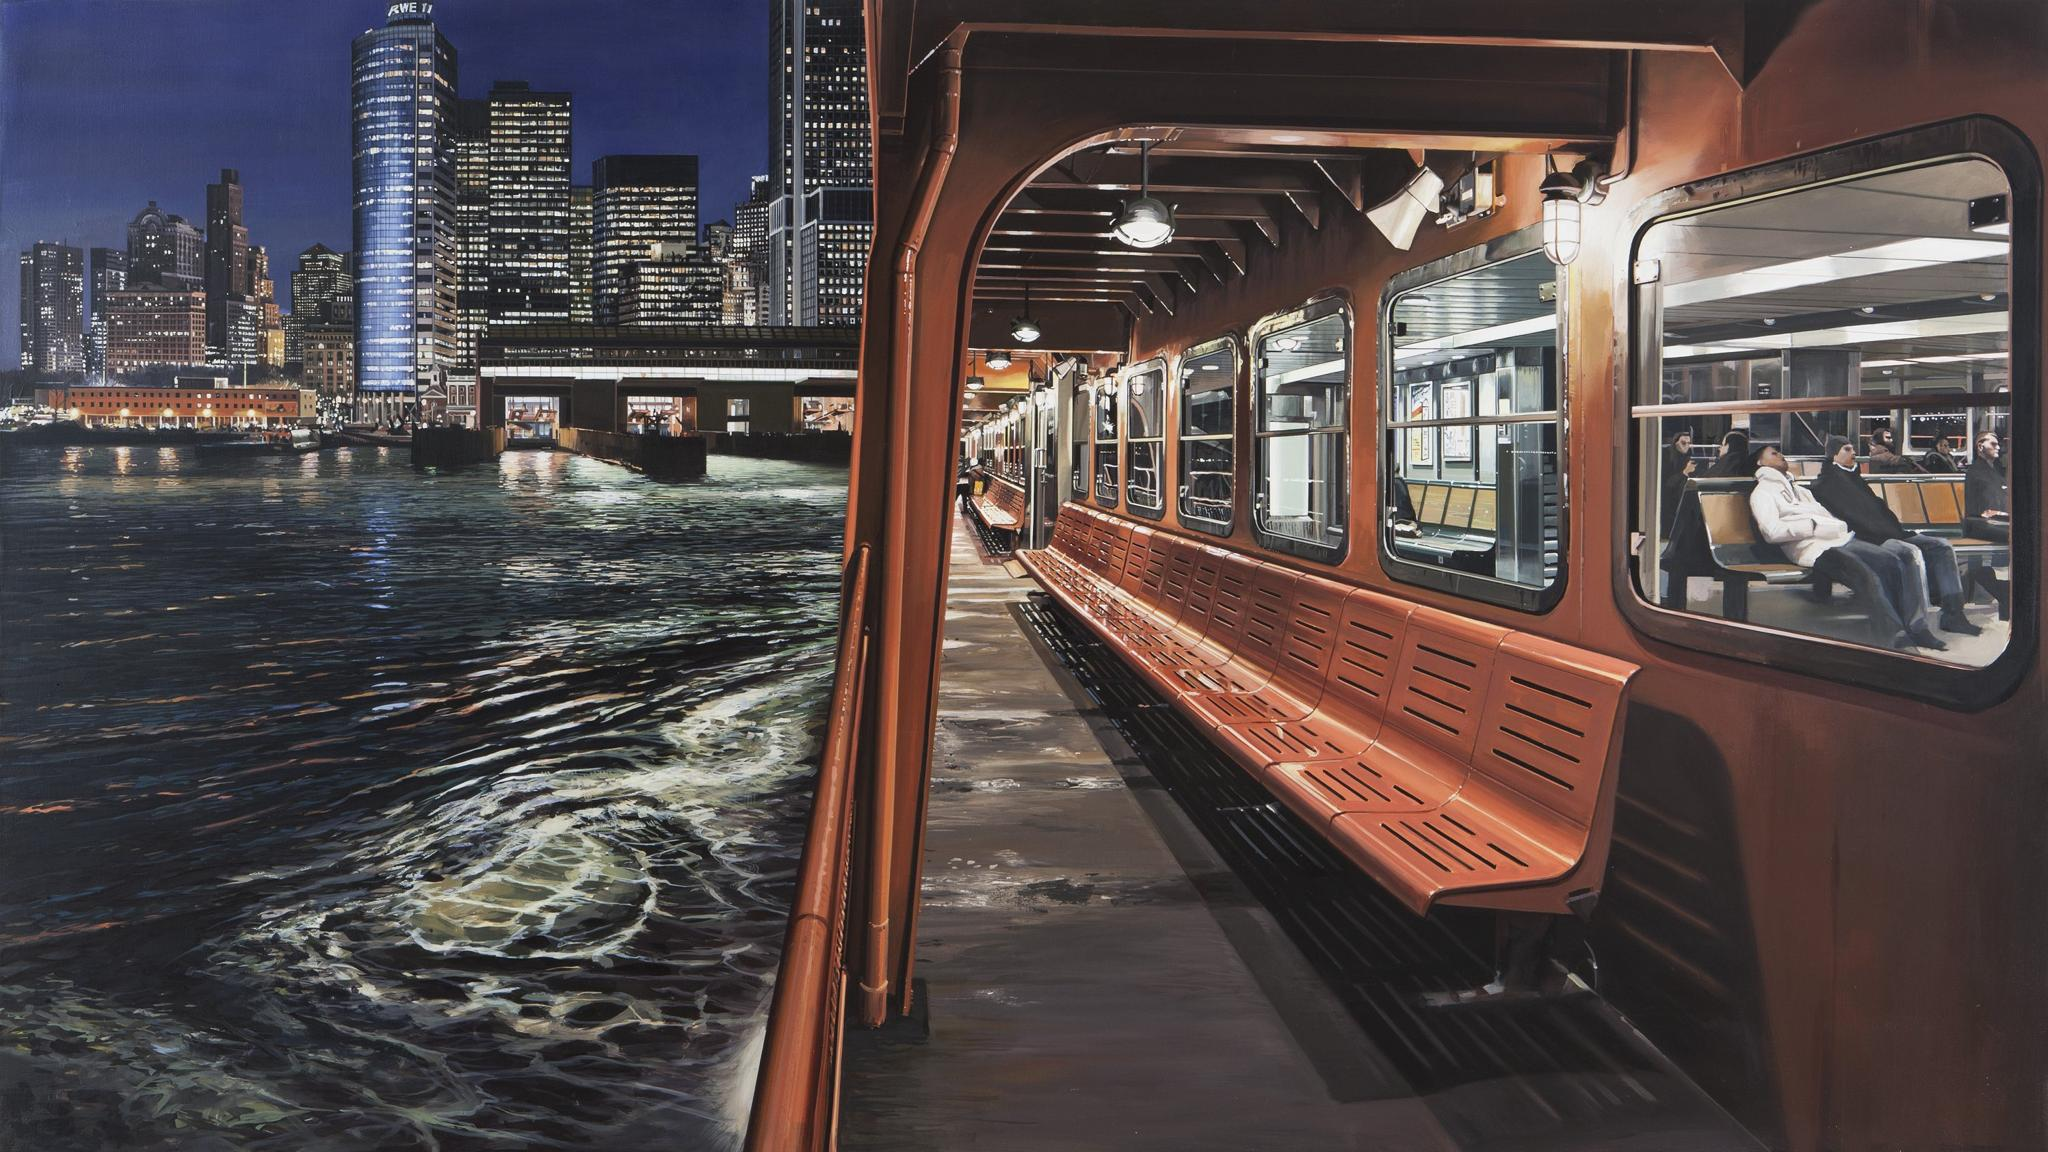 painting new york city, museum of arts and design, new york — review